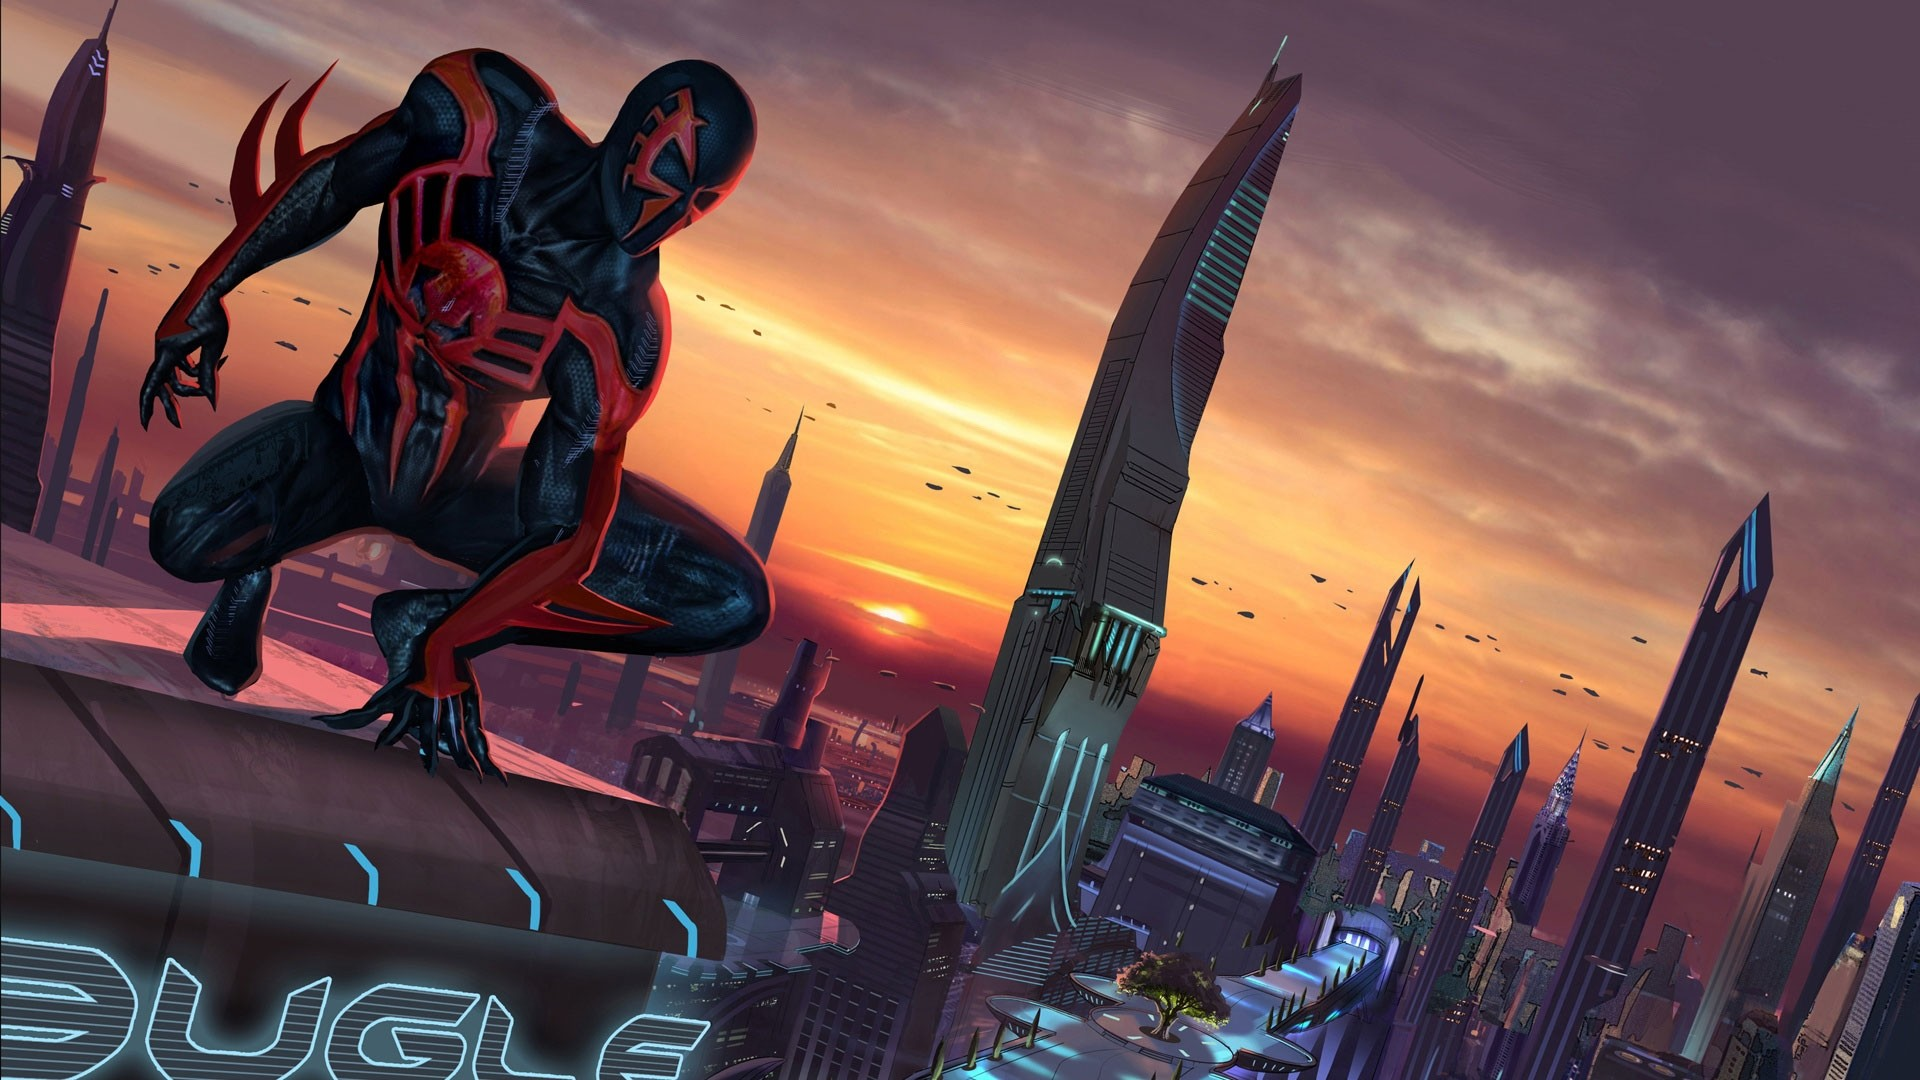 1920x1080 Free HD Spiderman wallpapers and Spiderman backgrounds in k,k HD Wallpapers Of Spiderman 4 Wallpapers)